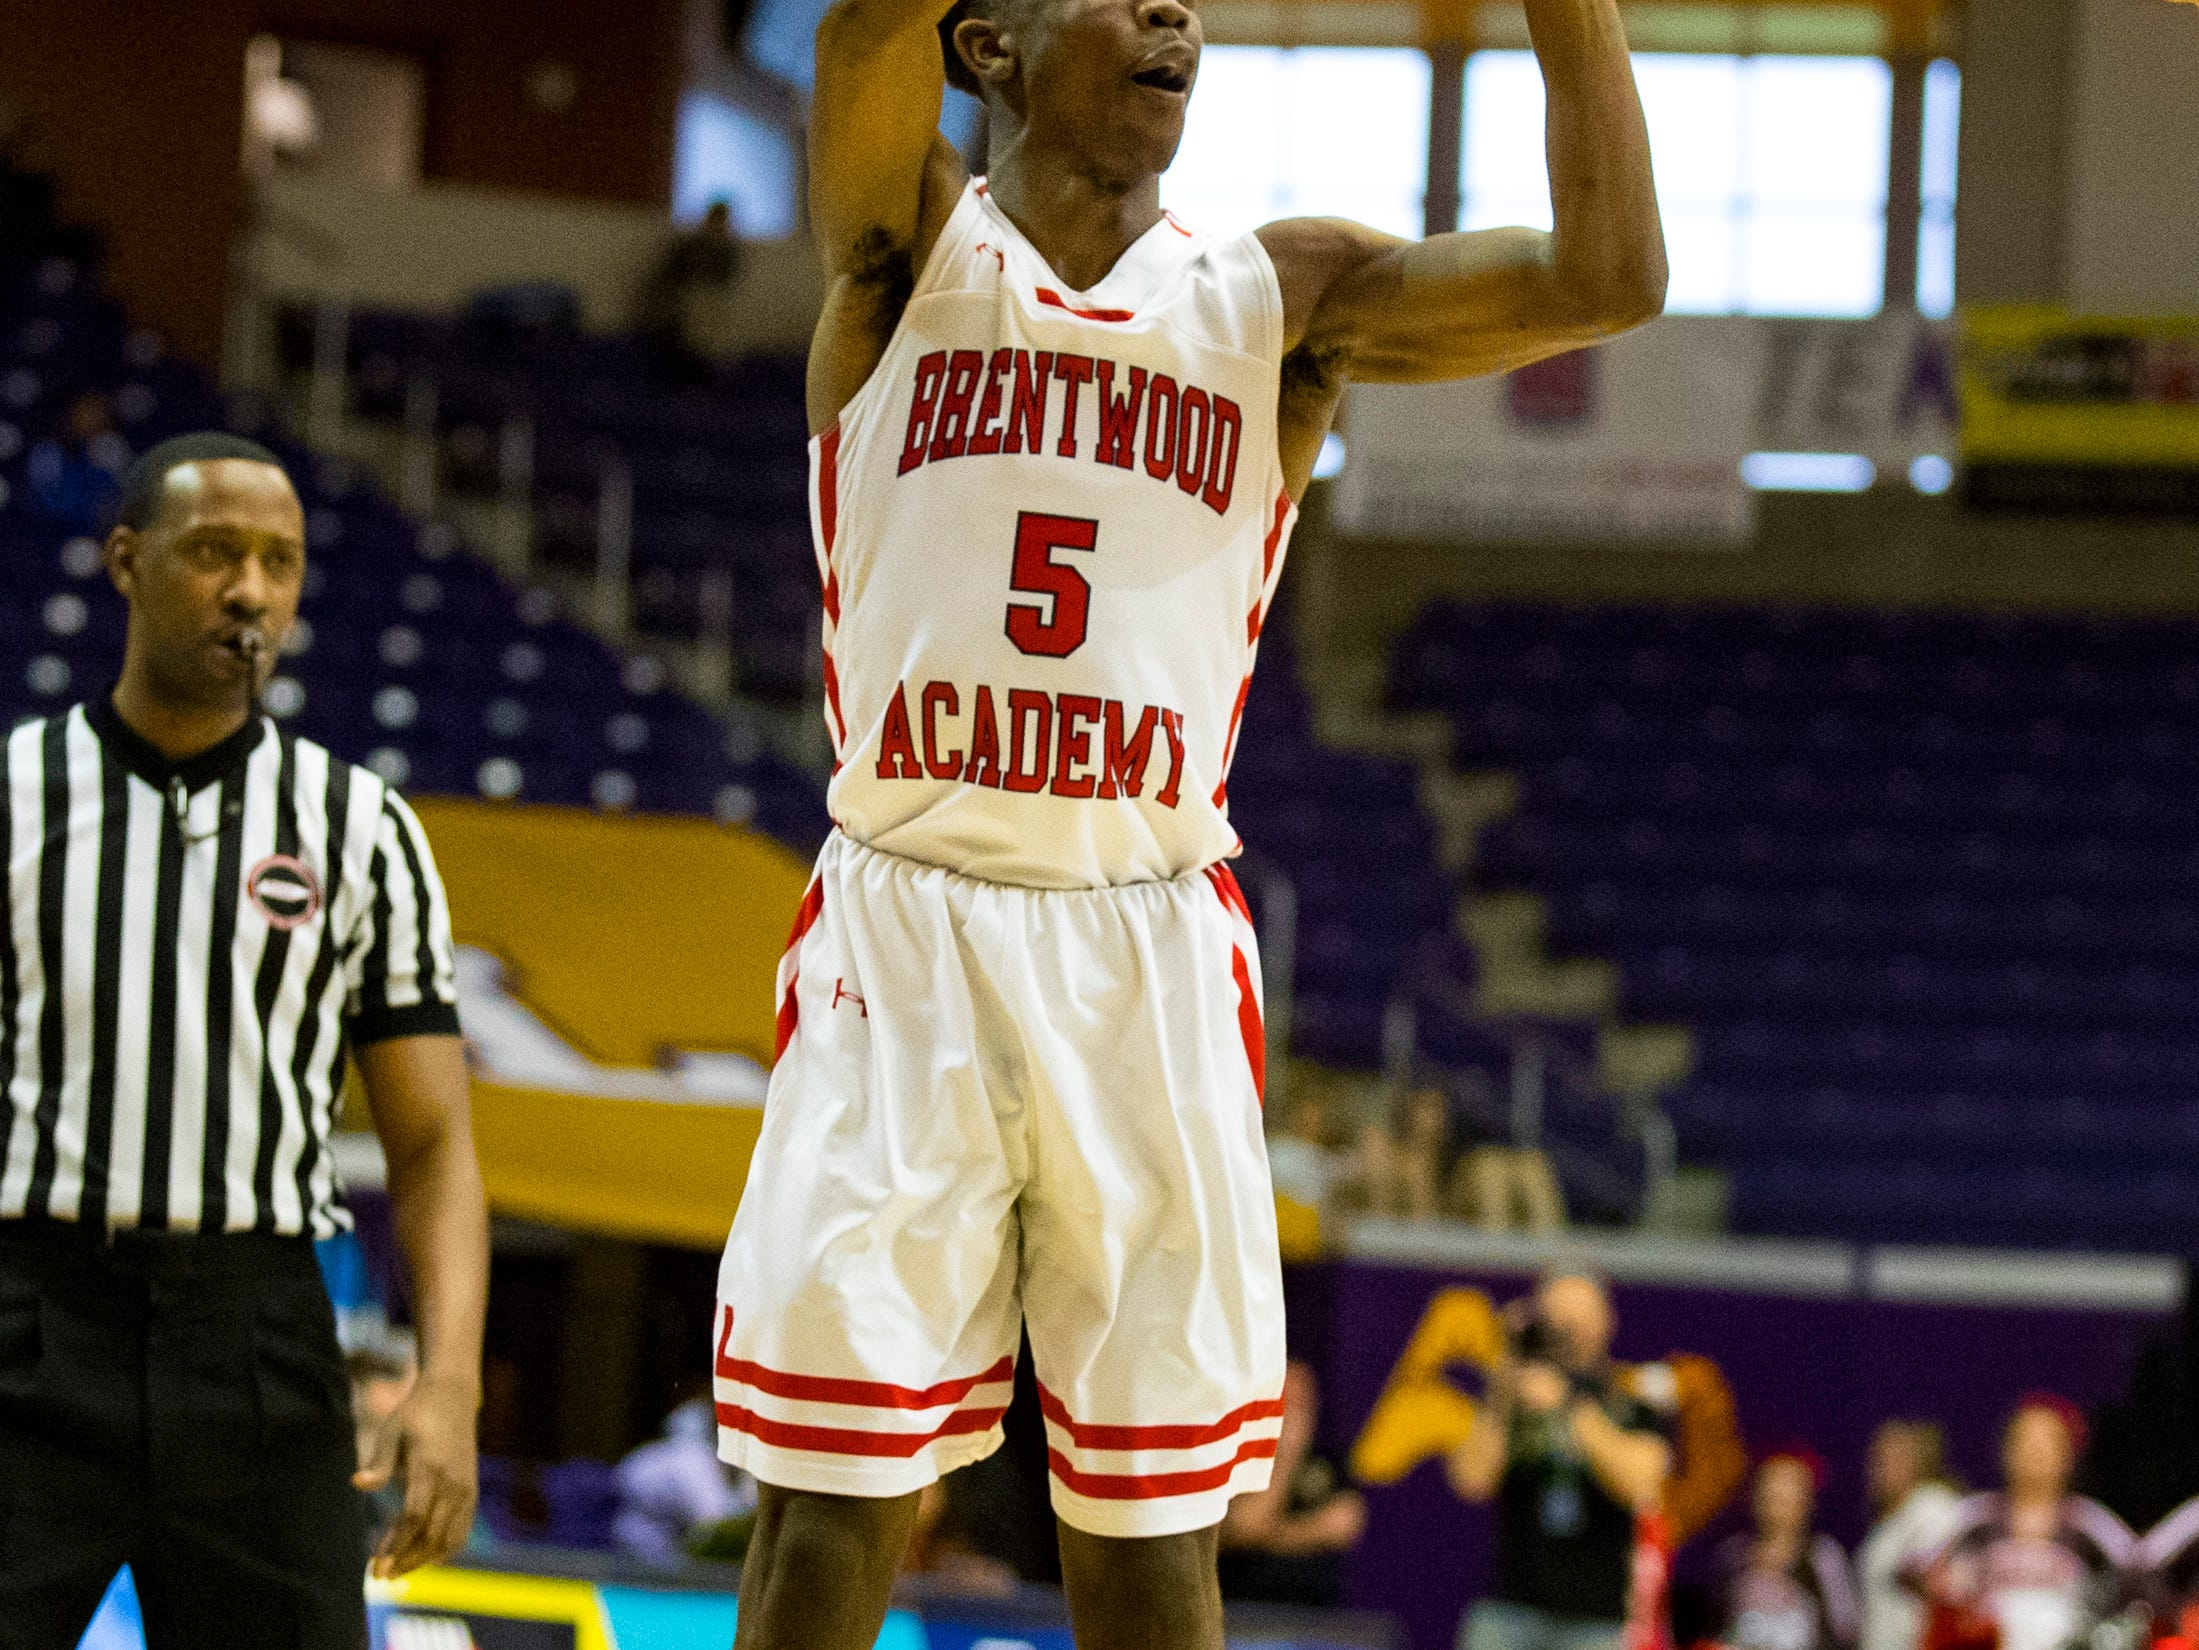 Brentwood Academy's Marcus Fitzgerald (5) shoots during Brentwood Academy's game against Baylor in the semifinal round of the TSSAA Division II Class AA State Championships at Lipscomb University's Allen Arena in Nashville on Thursday, Feb. 28, 2019.